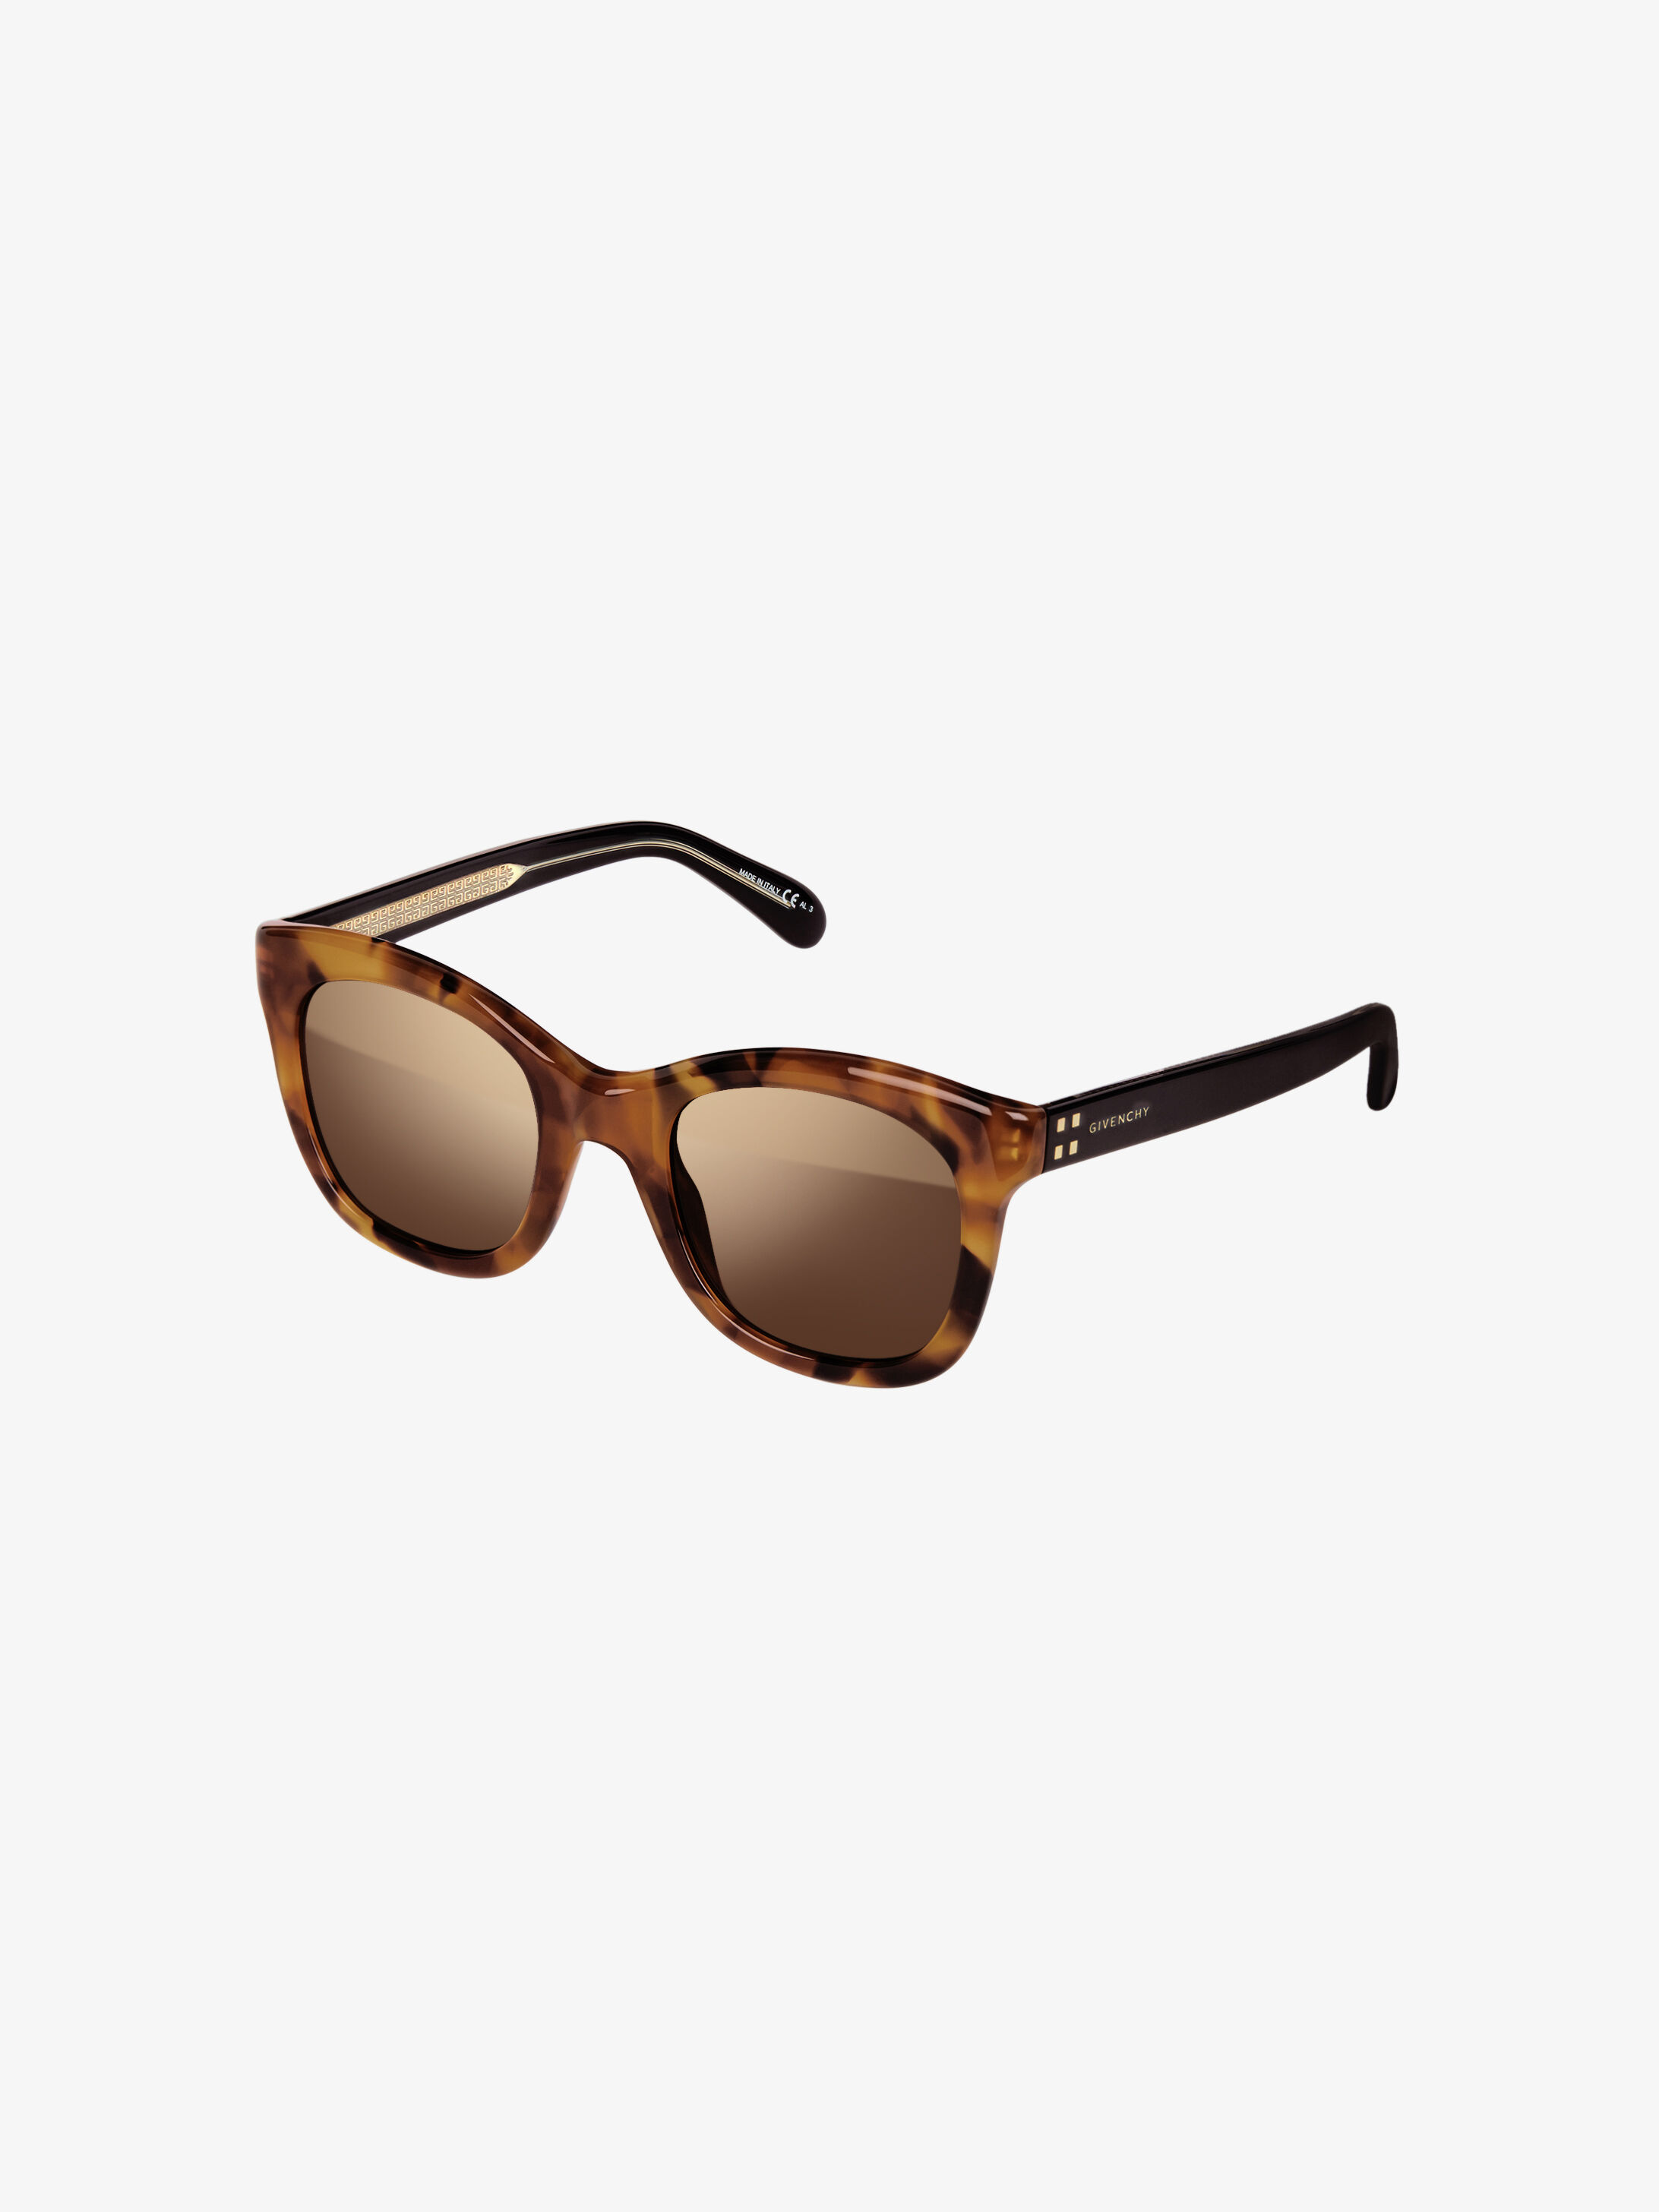 a08820a86517 Women's Sunglasses collection by Givenchy. | GIVENCHY Paris